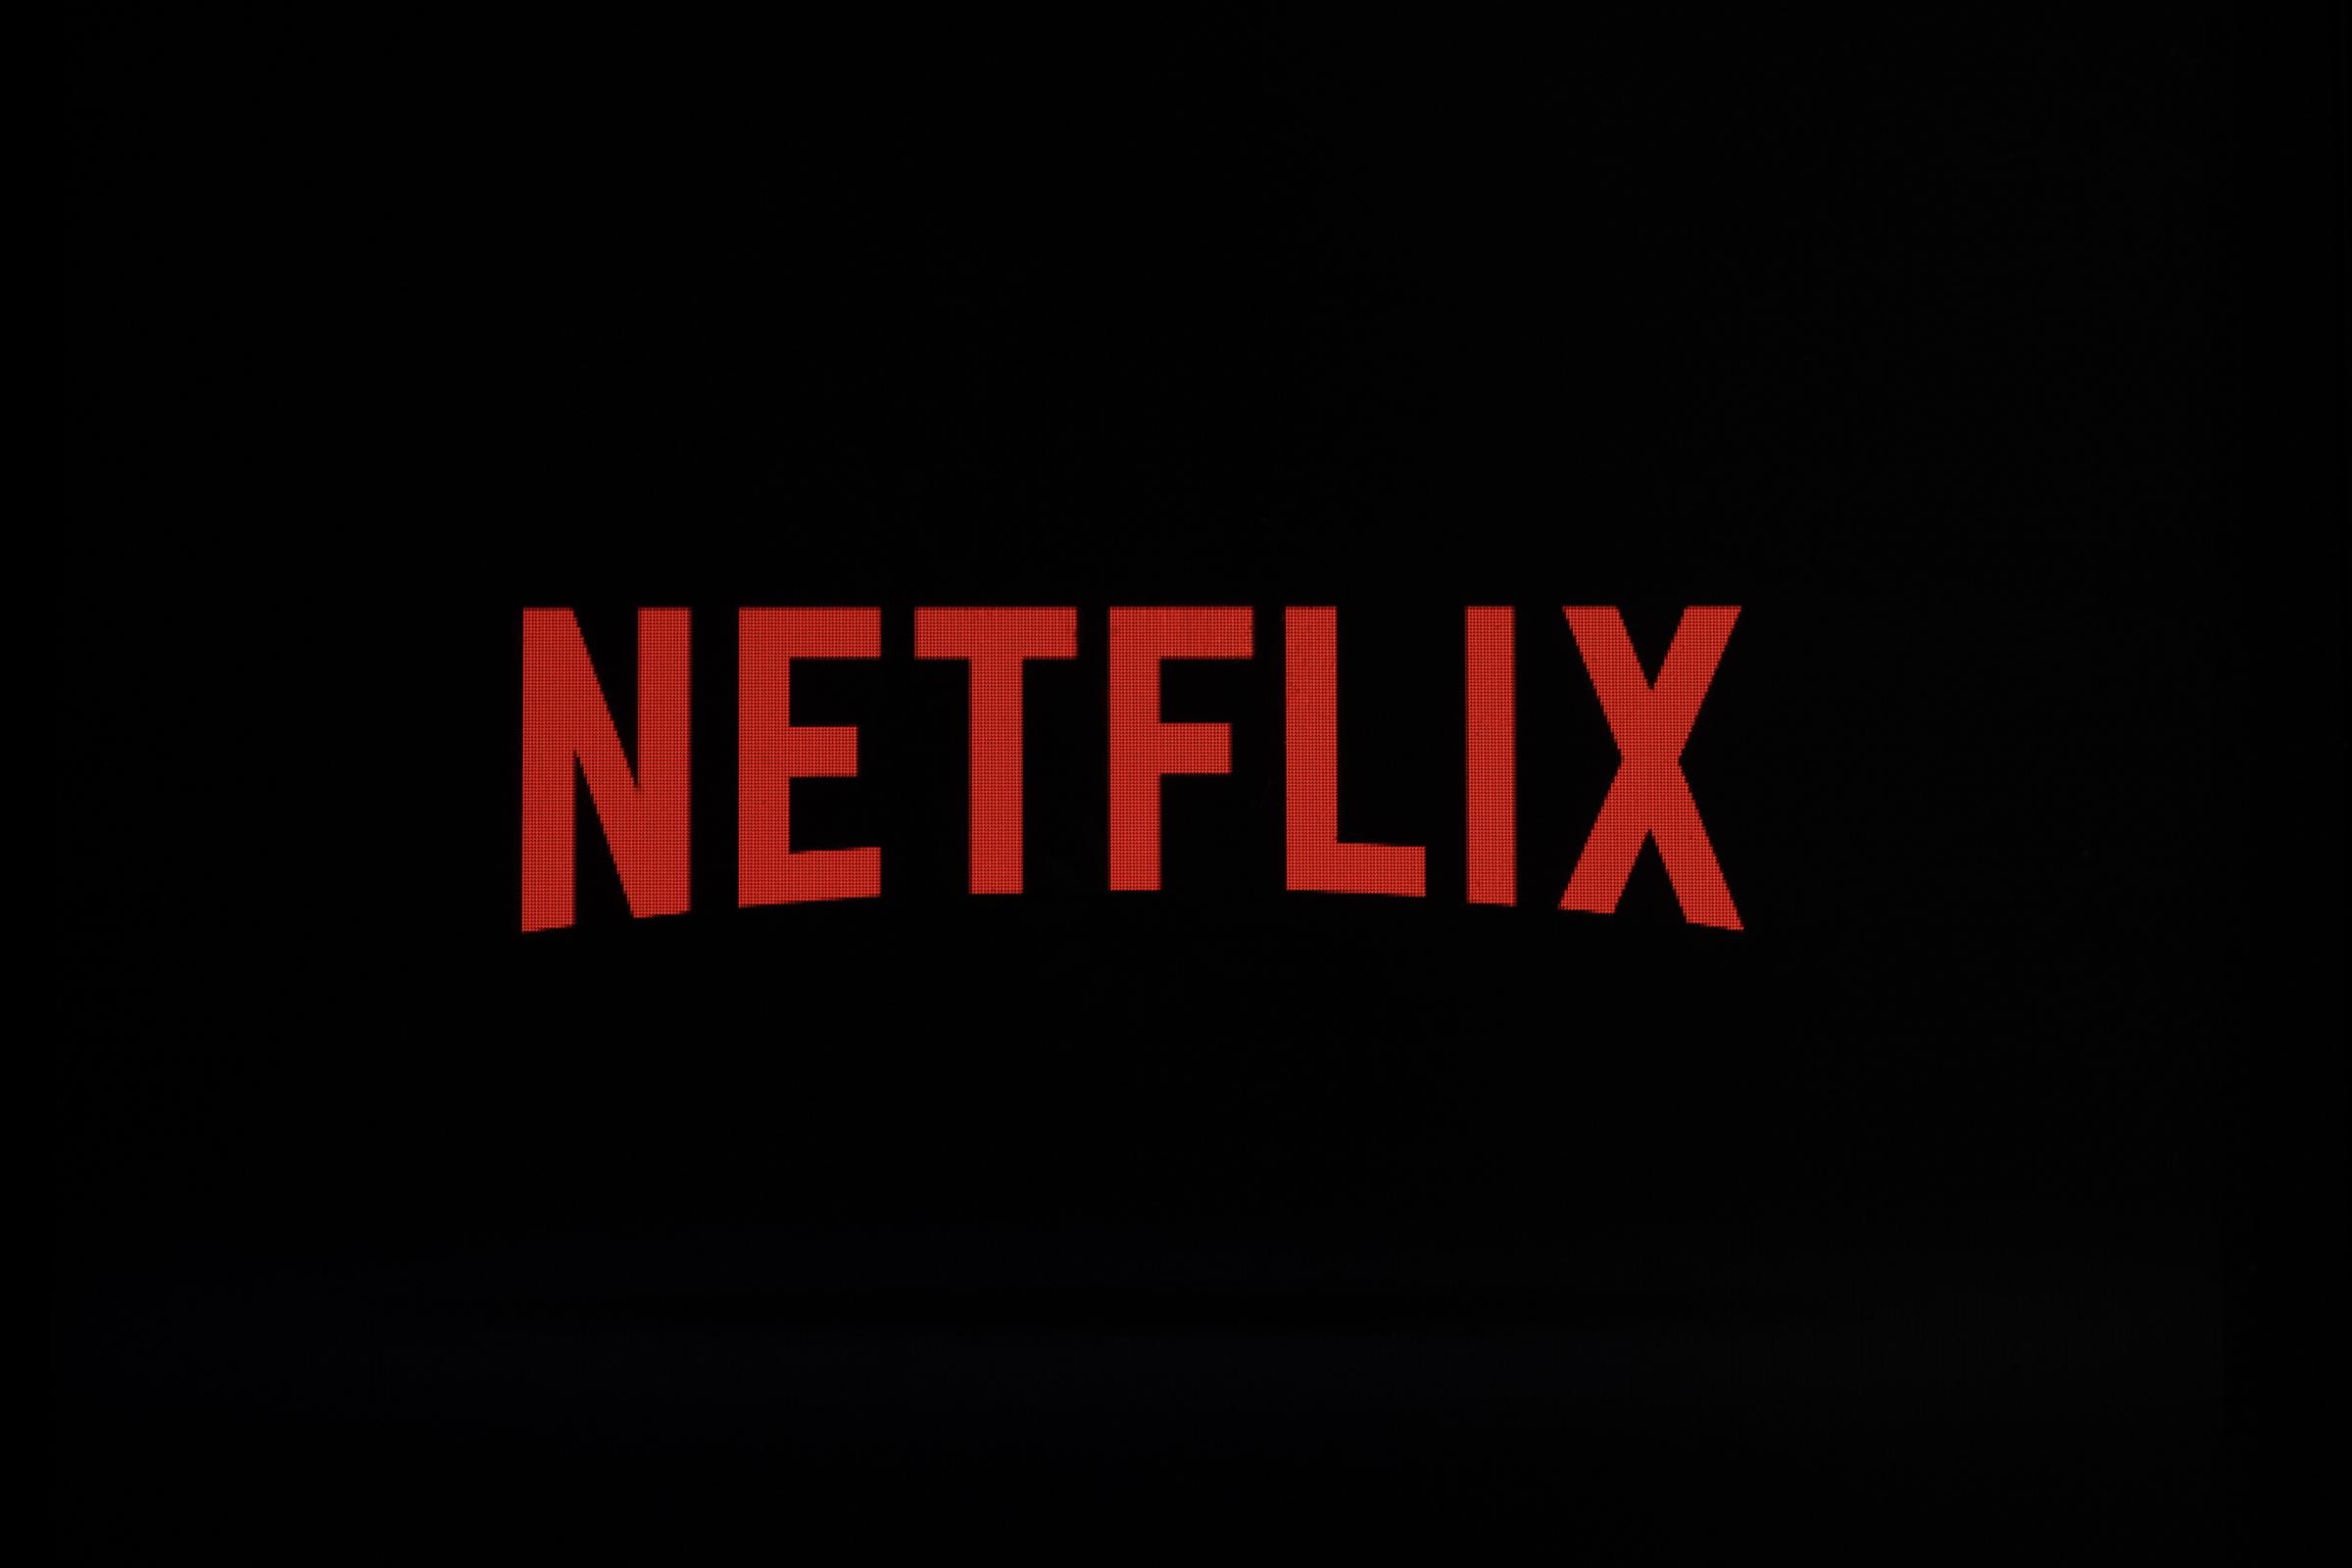 Netflix to increase subscription price by up to £24